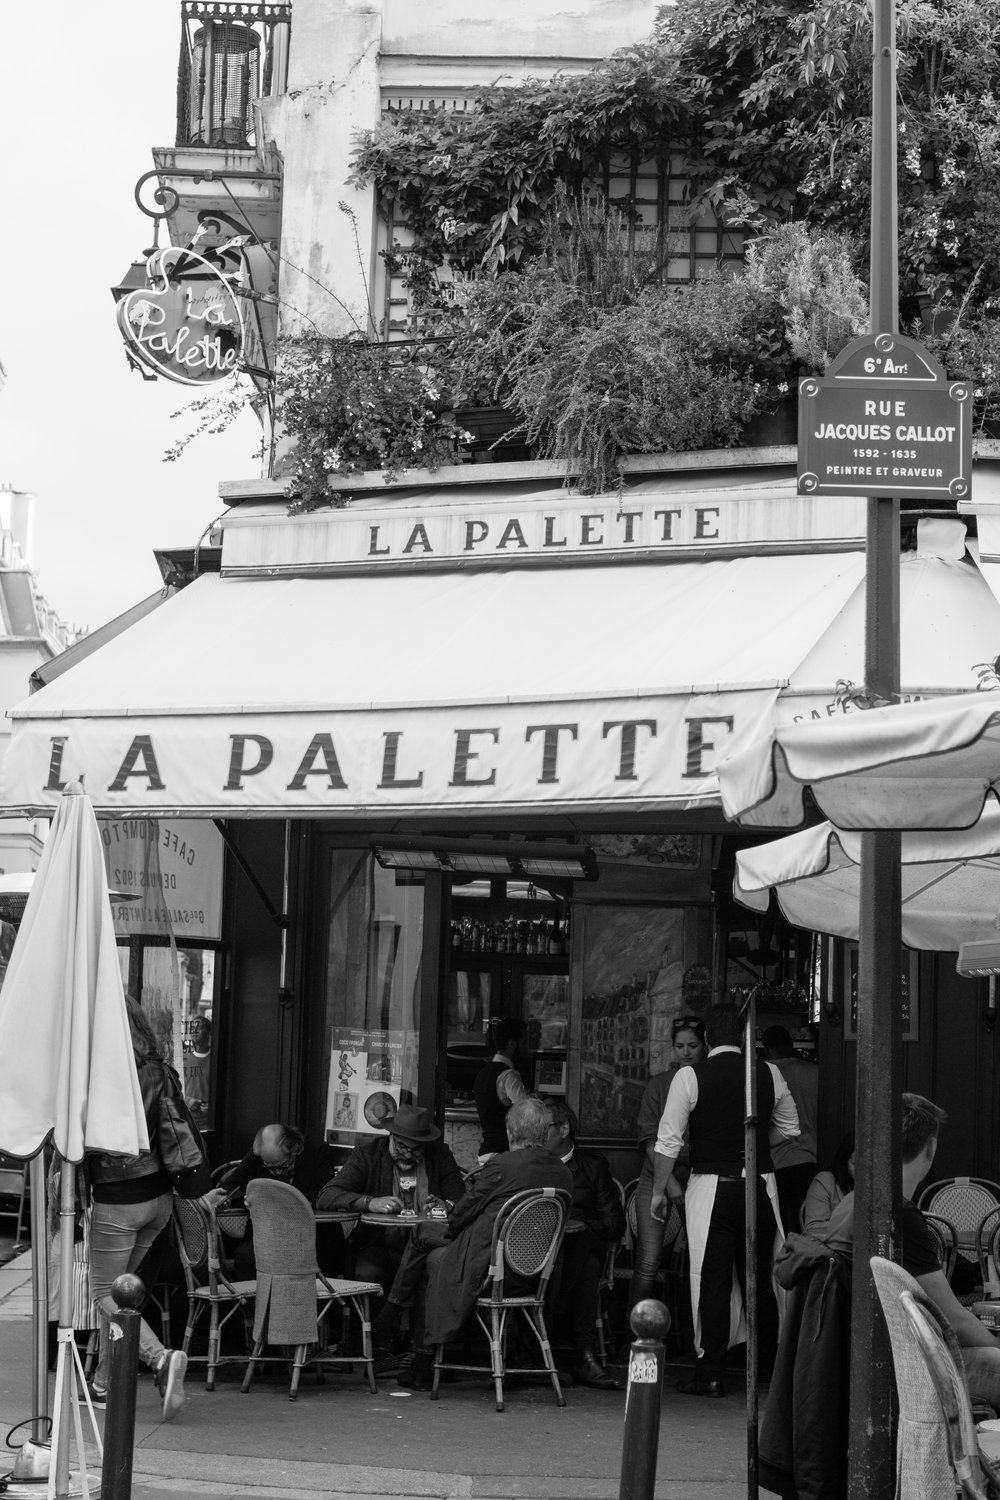 la palette paris france